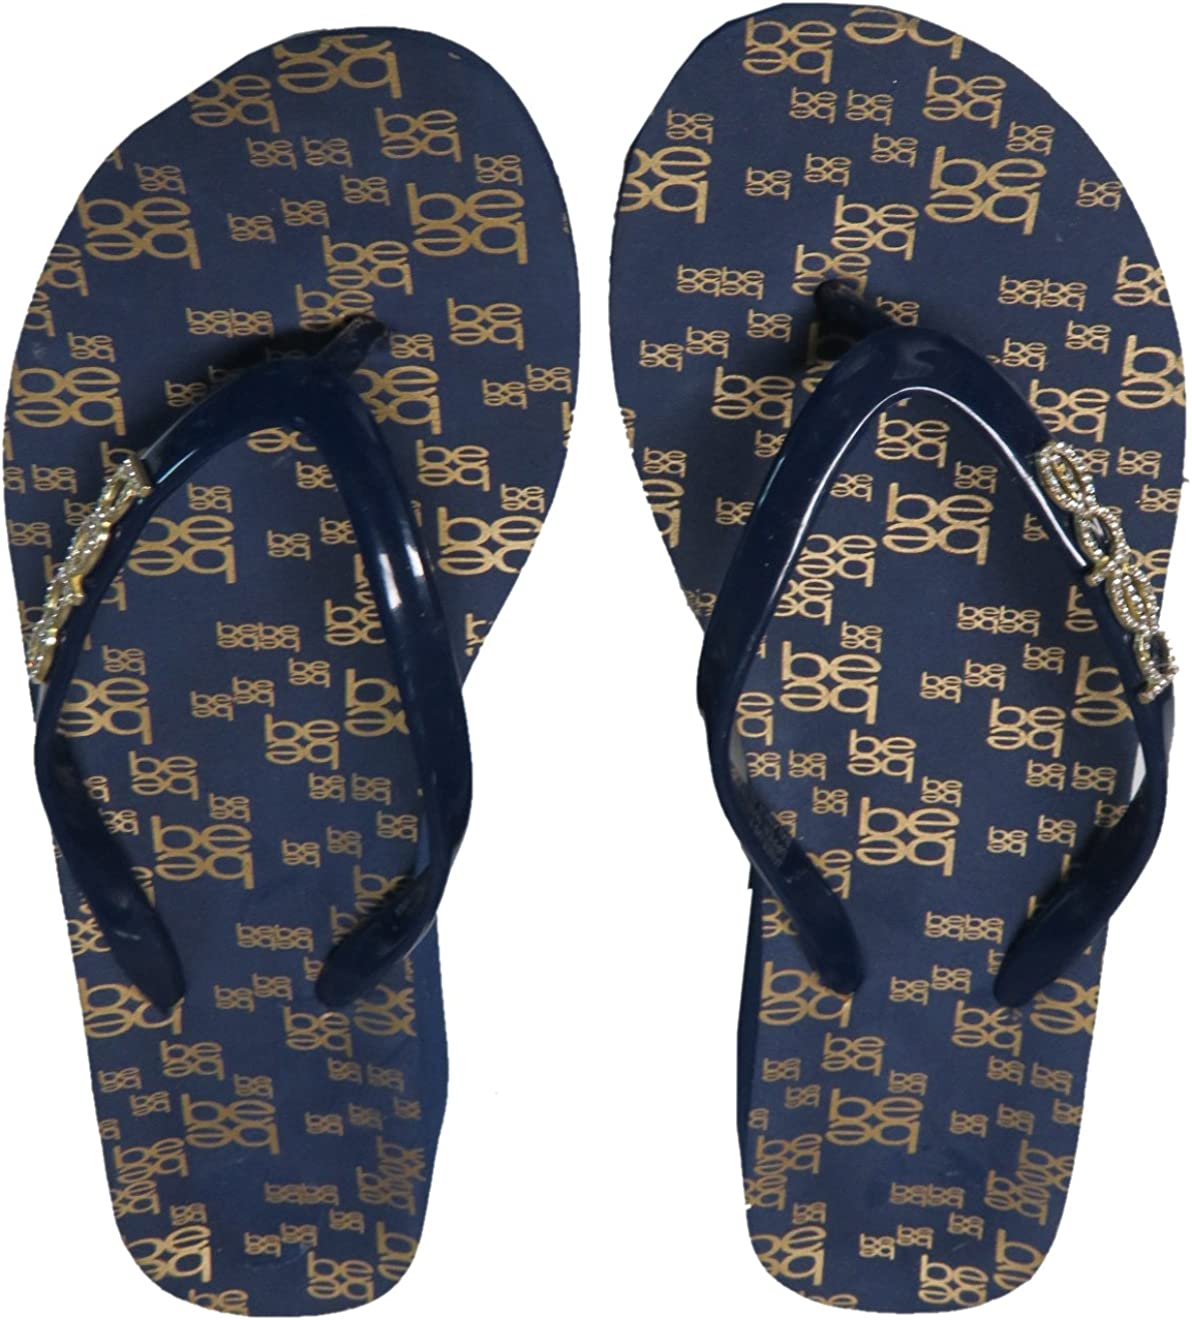 bebe Women's Flip Flop Max Ranking integrated 1st place 76% OFF Thong w Bling Blue